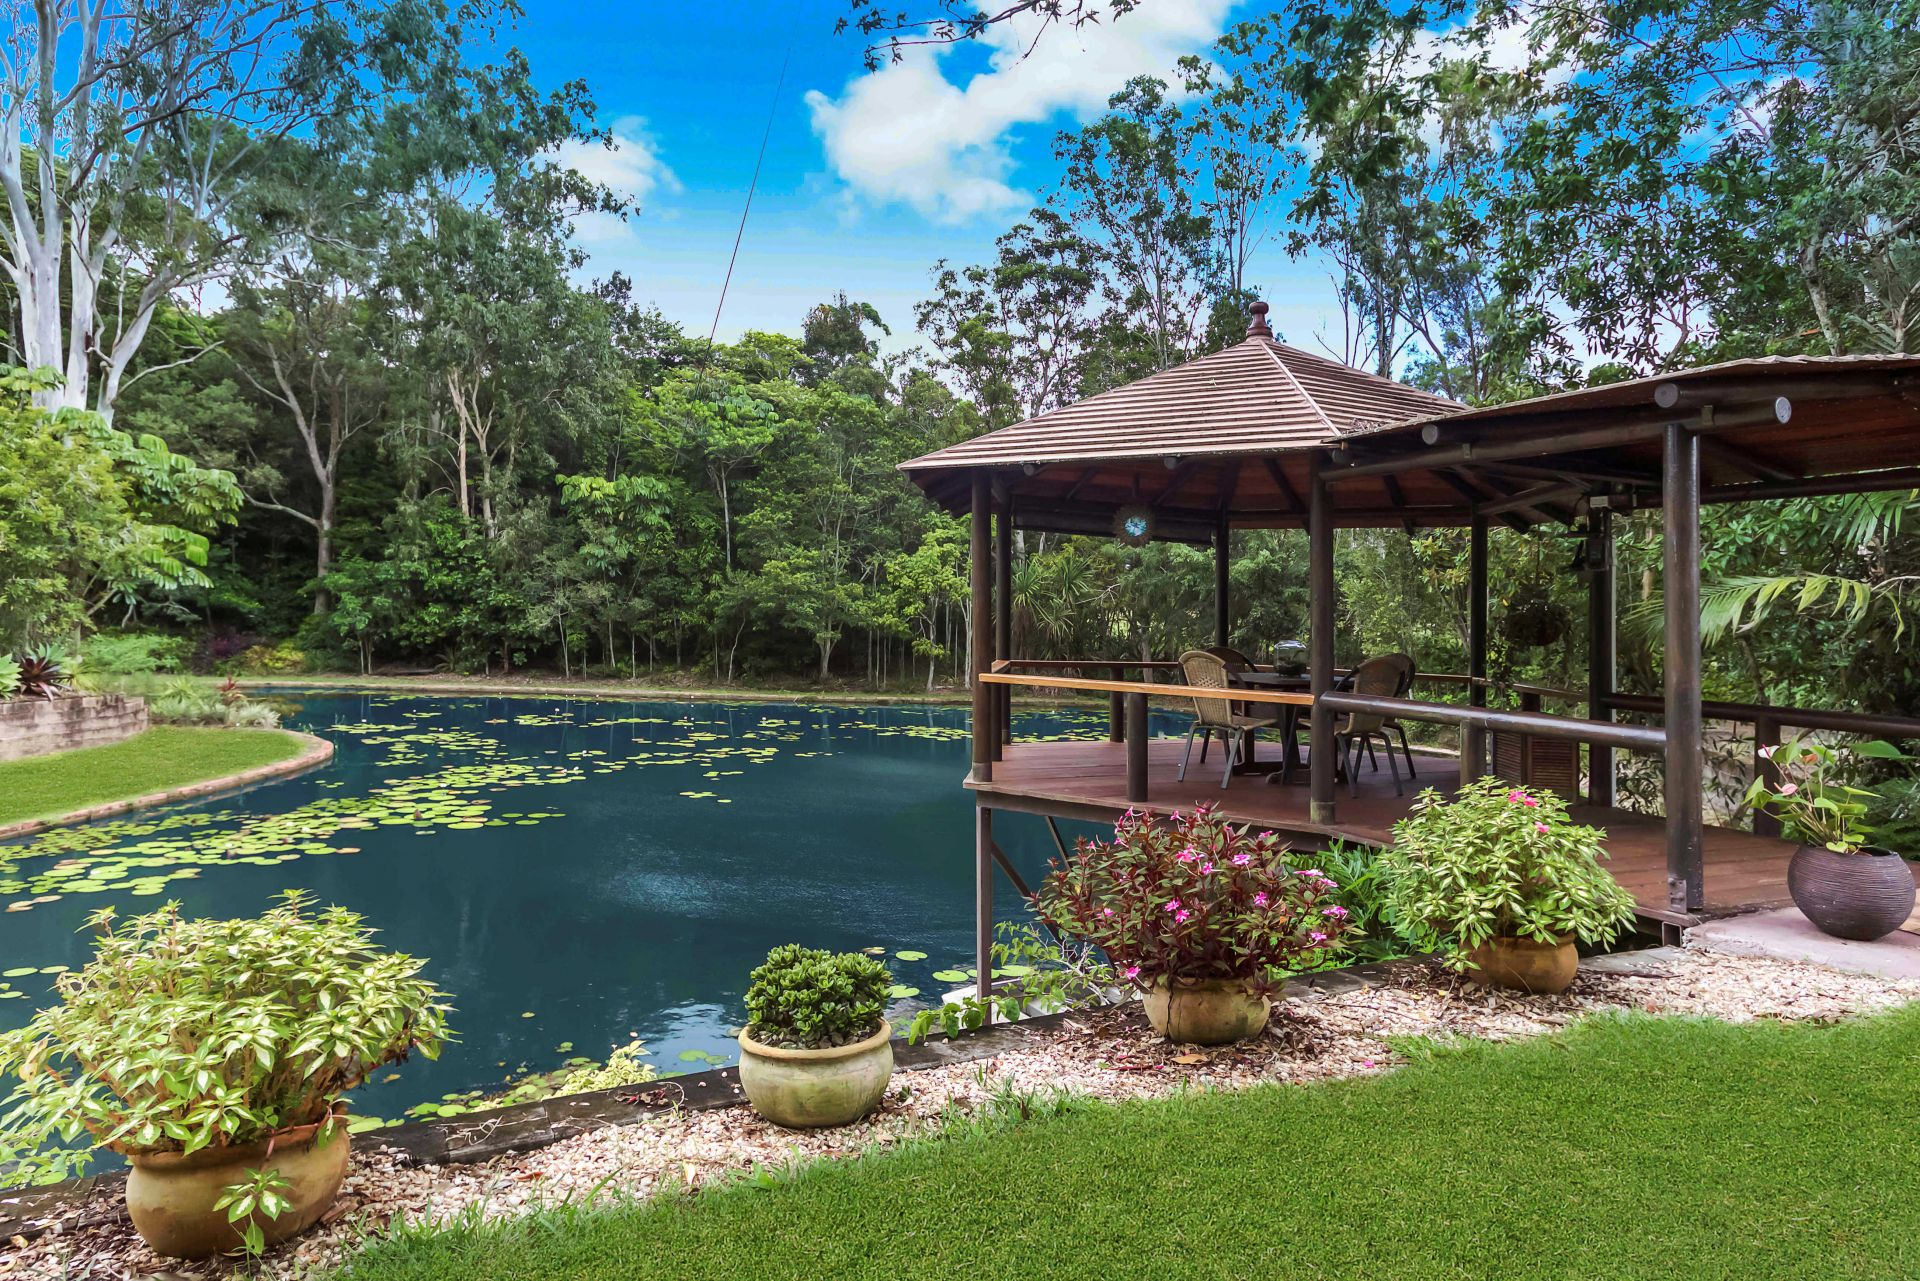 Additional photo for property listing at Idyllic tablelands rainforest retreat with breathtaking grounds   Queensland,4883 Australien